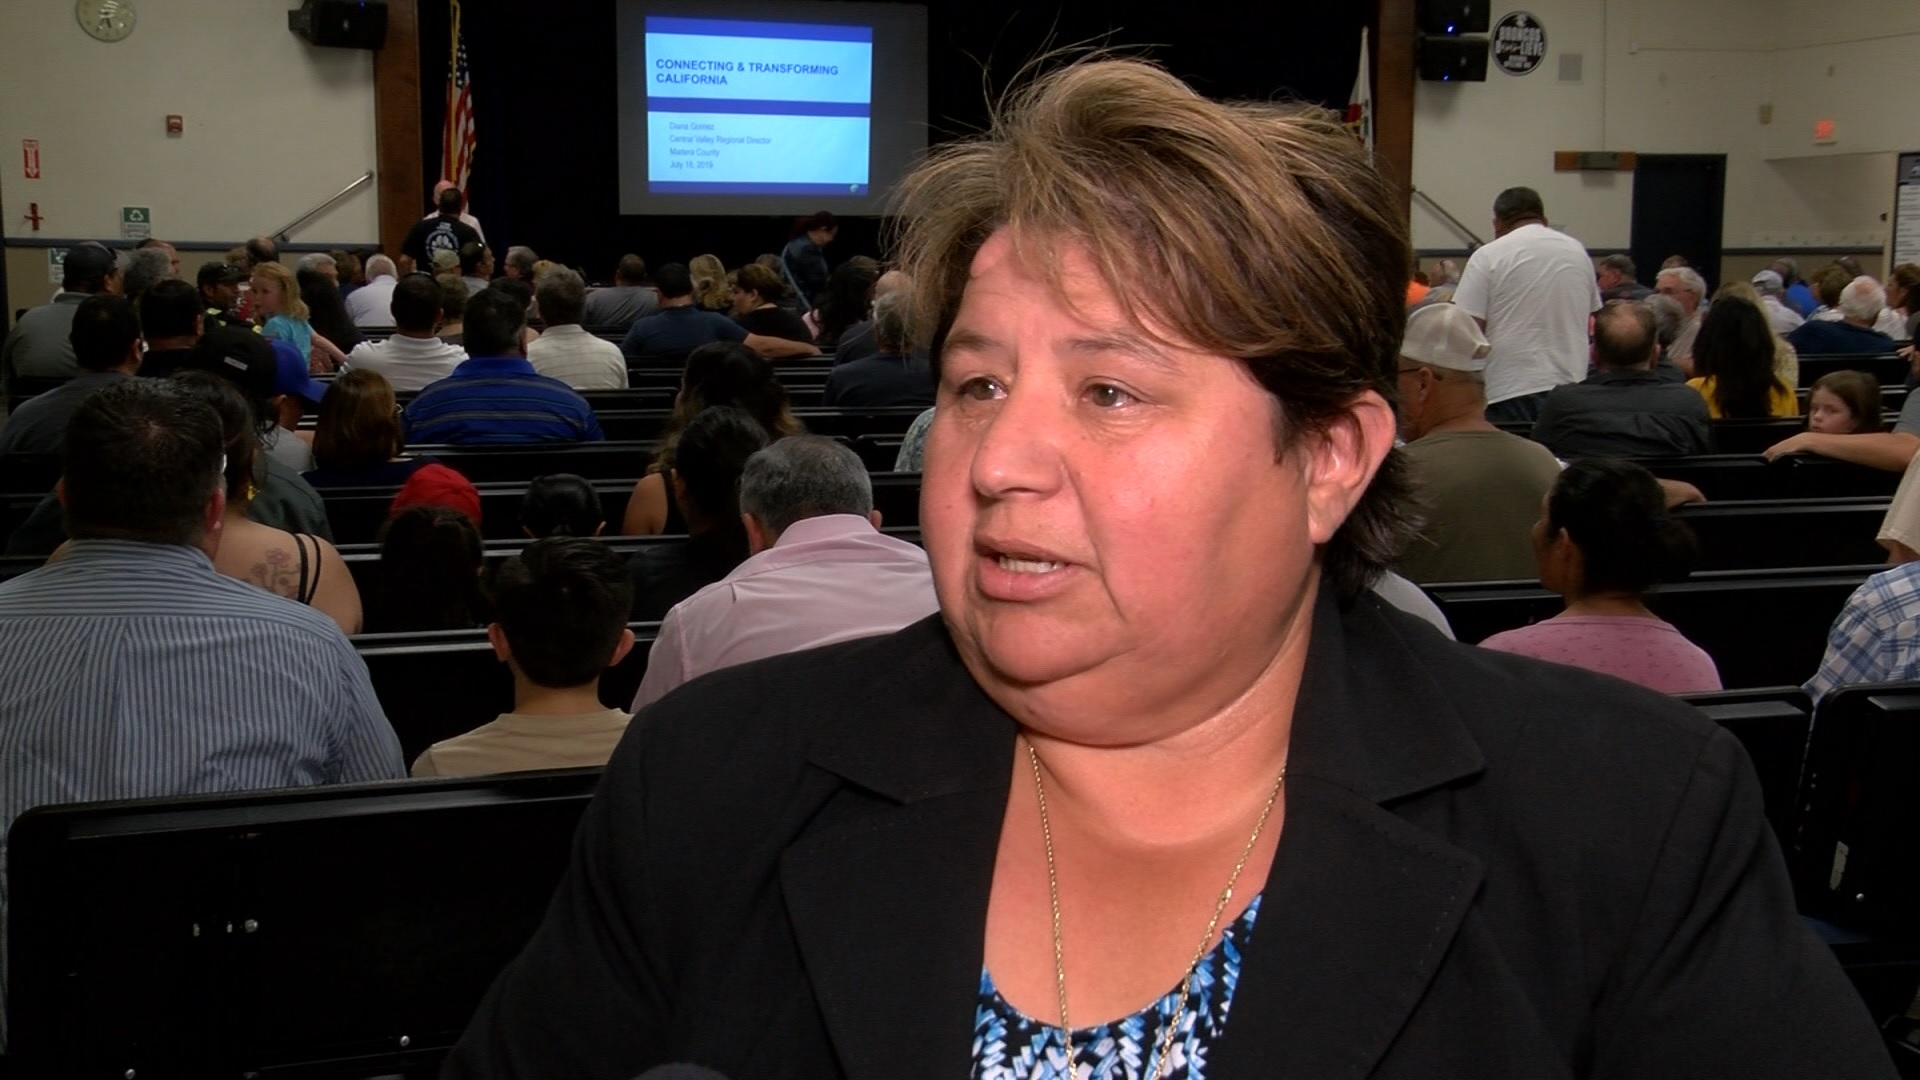 HSR's Central Valley Regional Director leaves - for a job at Caltrans